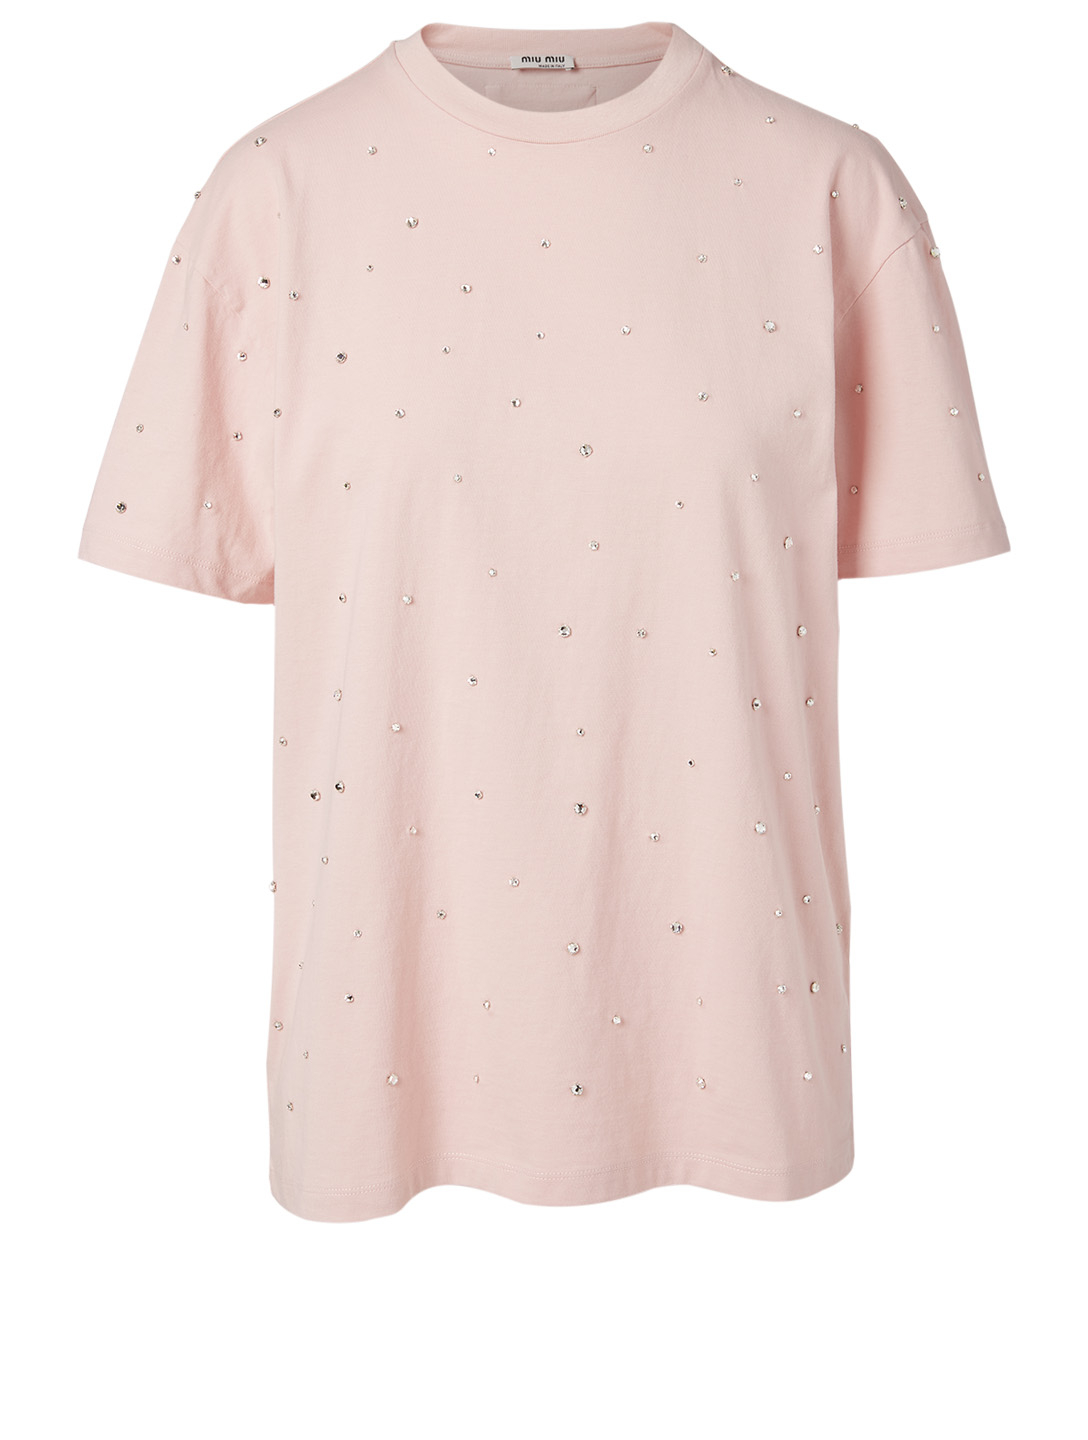 MIU MIU Cotton Oversized T-Shirt Women's Pink